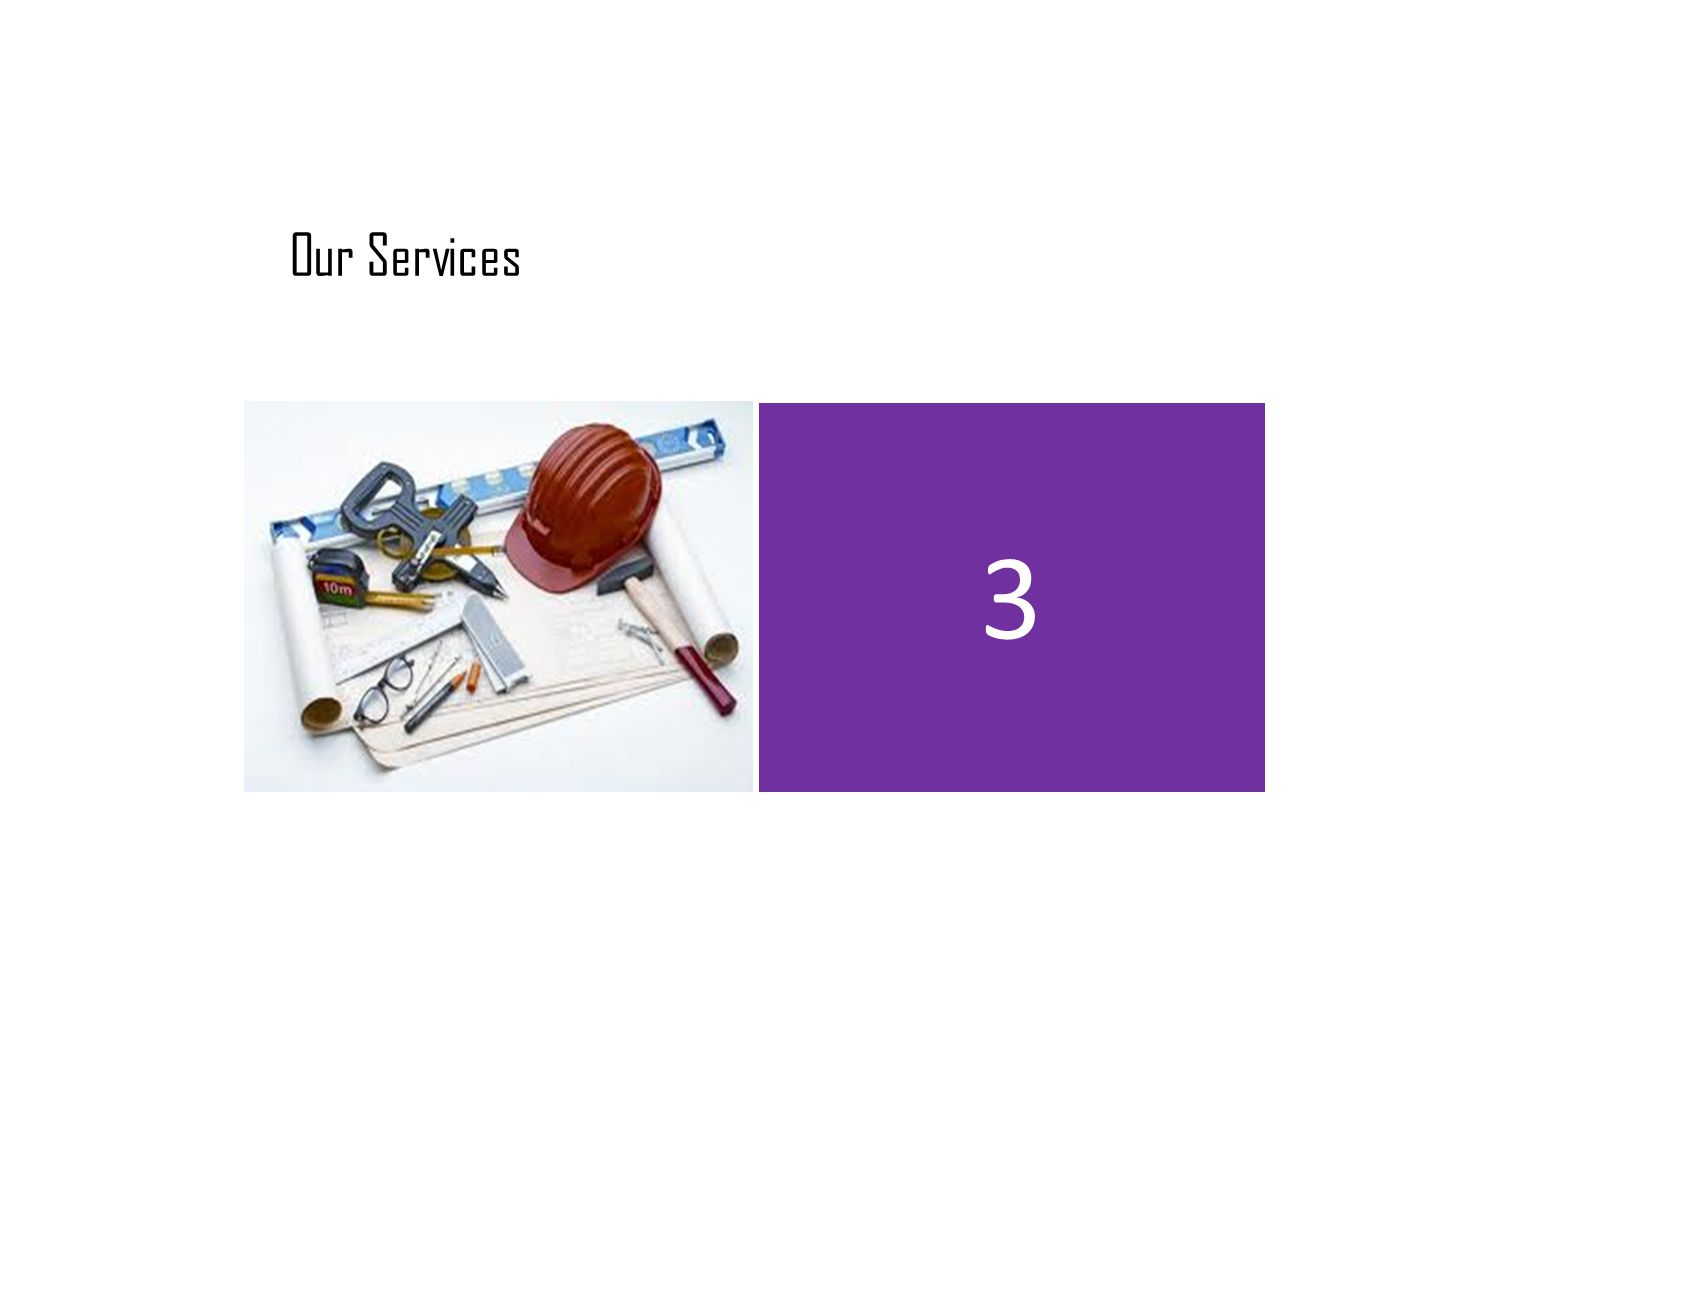 Our Services 3